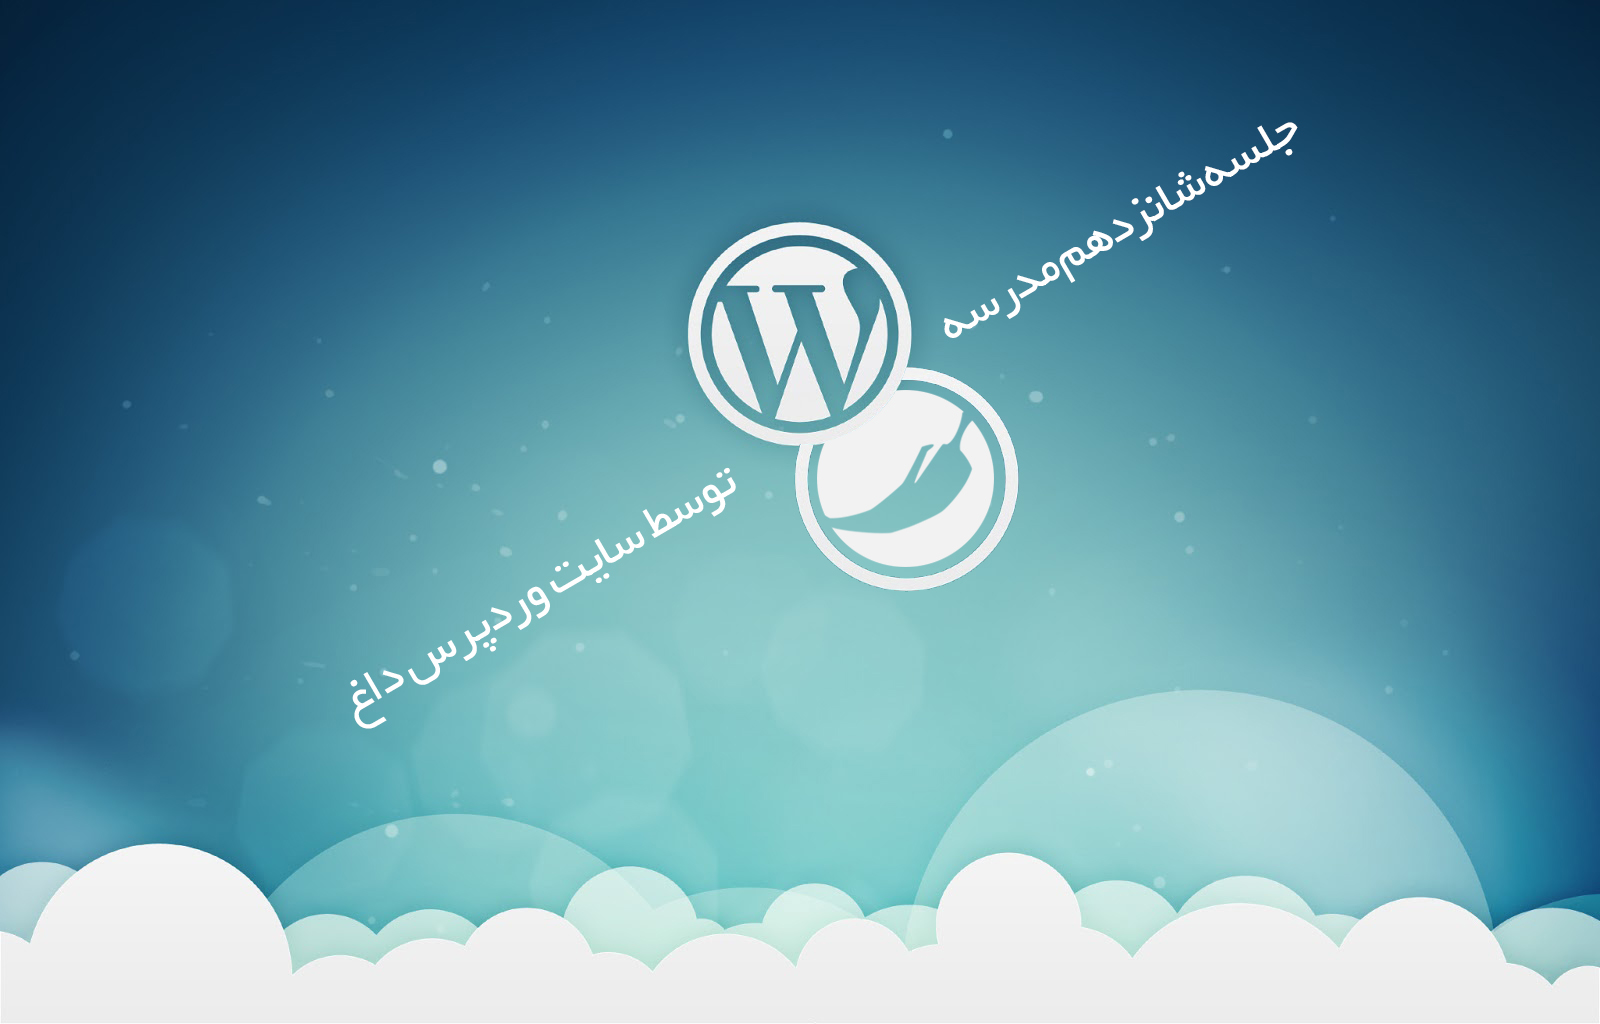 school-wordpress-redwp-16